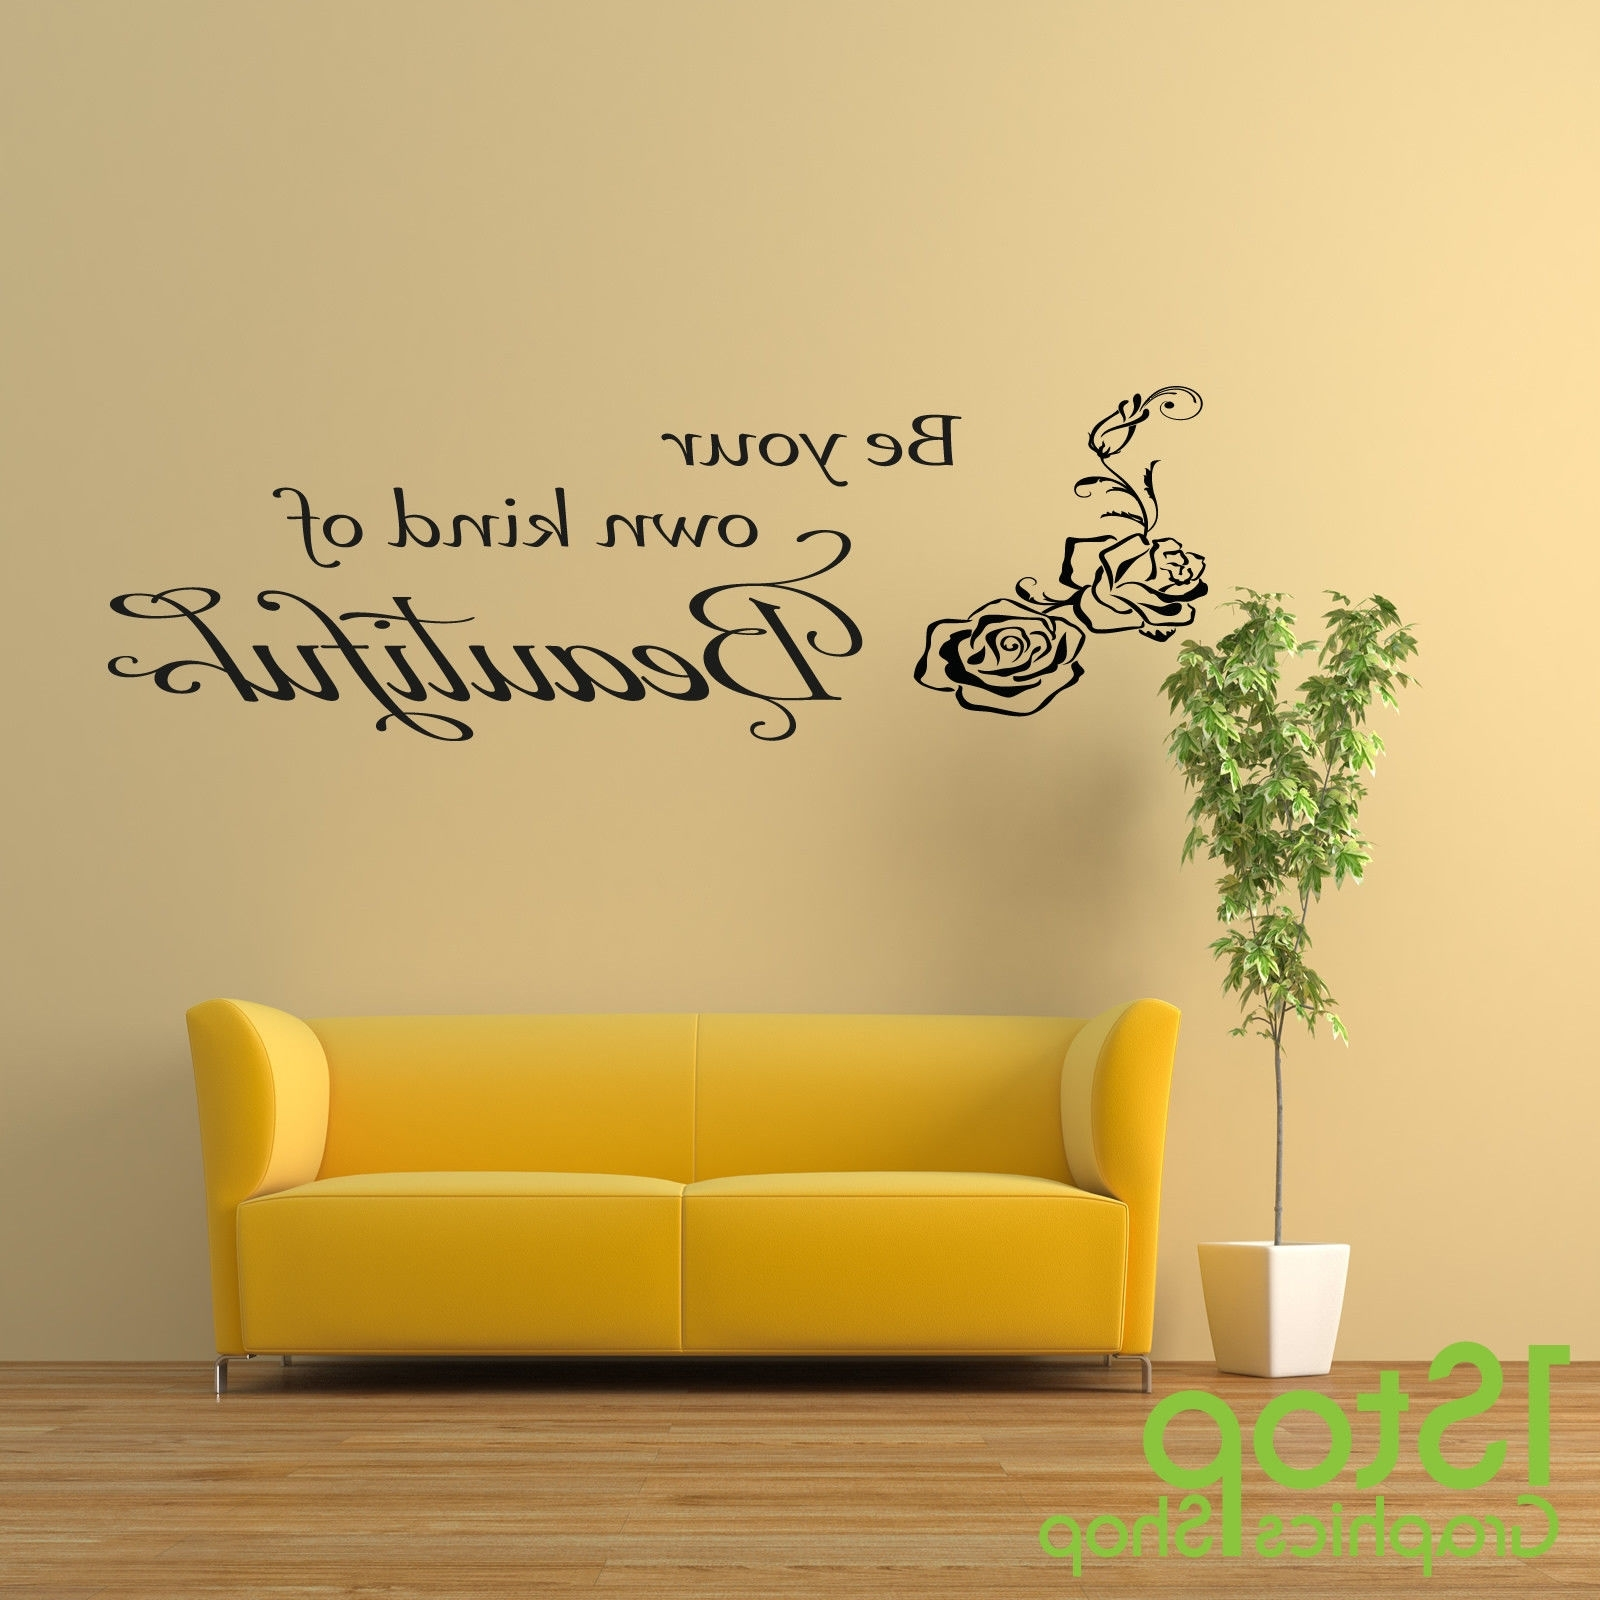 Be Your Own Kind Of Beautiful Wall Art Intended For Preferred Be Your Own Kind Of Beautiful Wall Sticker Quote – Lounge Wall Art (View 13 of 15)